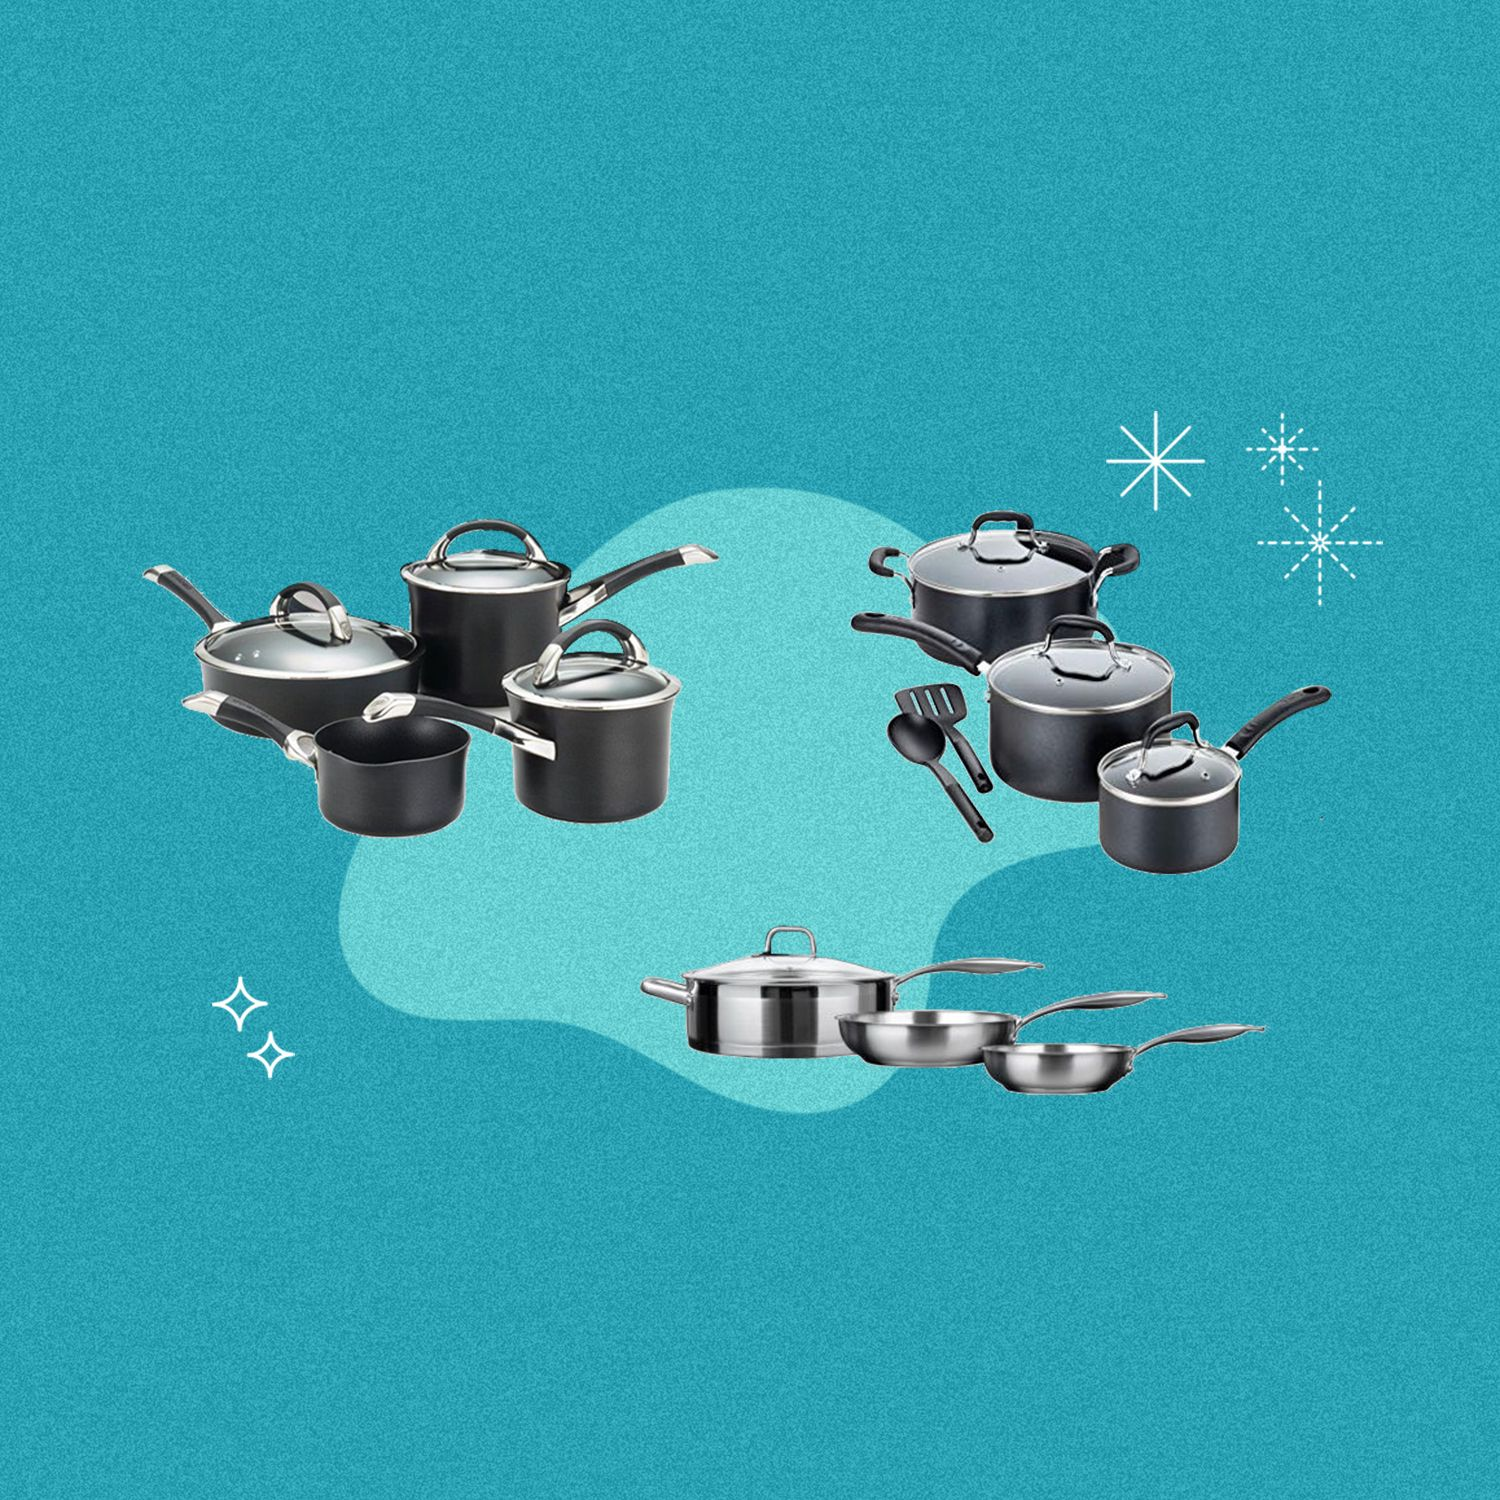 7 Best Induction Cookware Sets 2020 Induction Cookware Brands From Amazon And Walmart